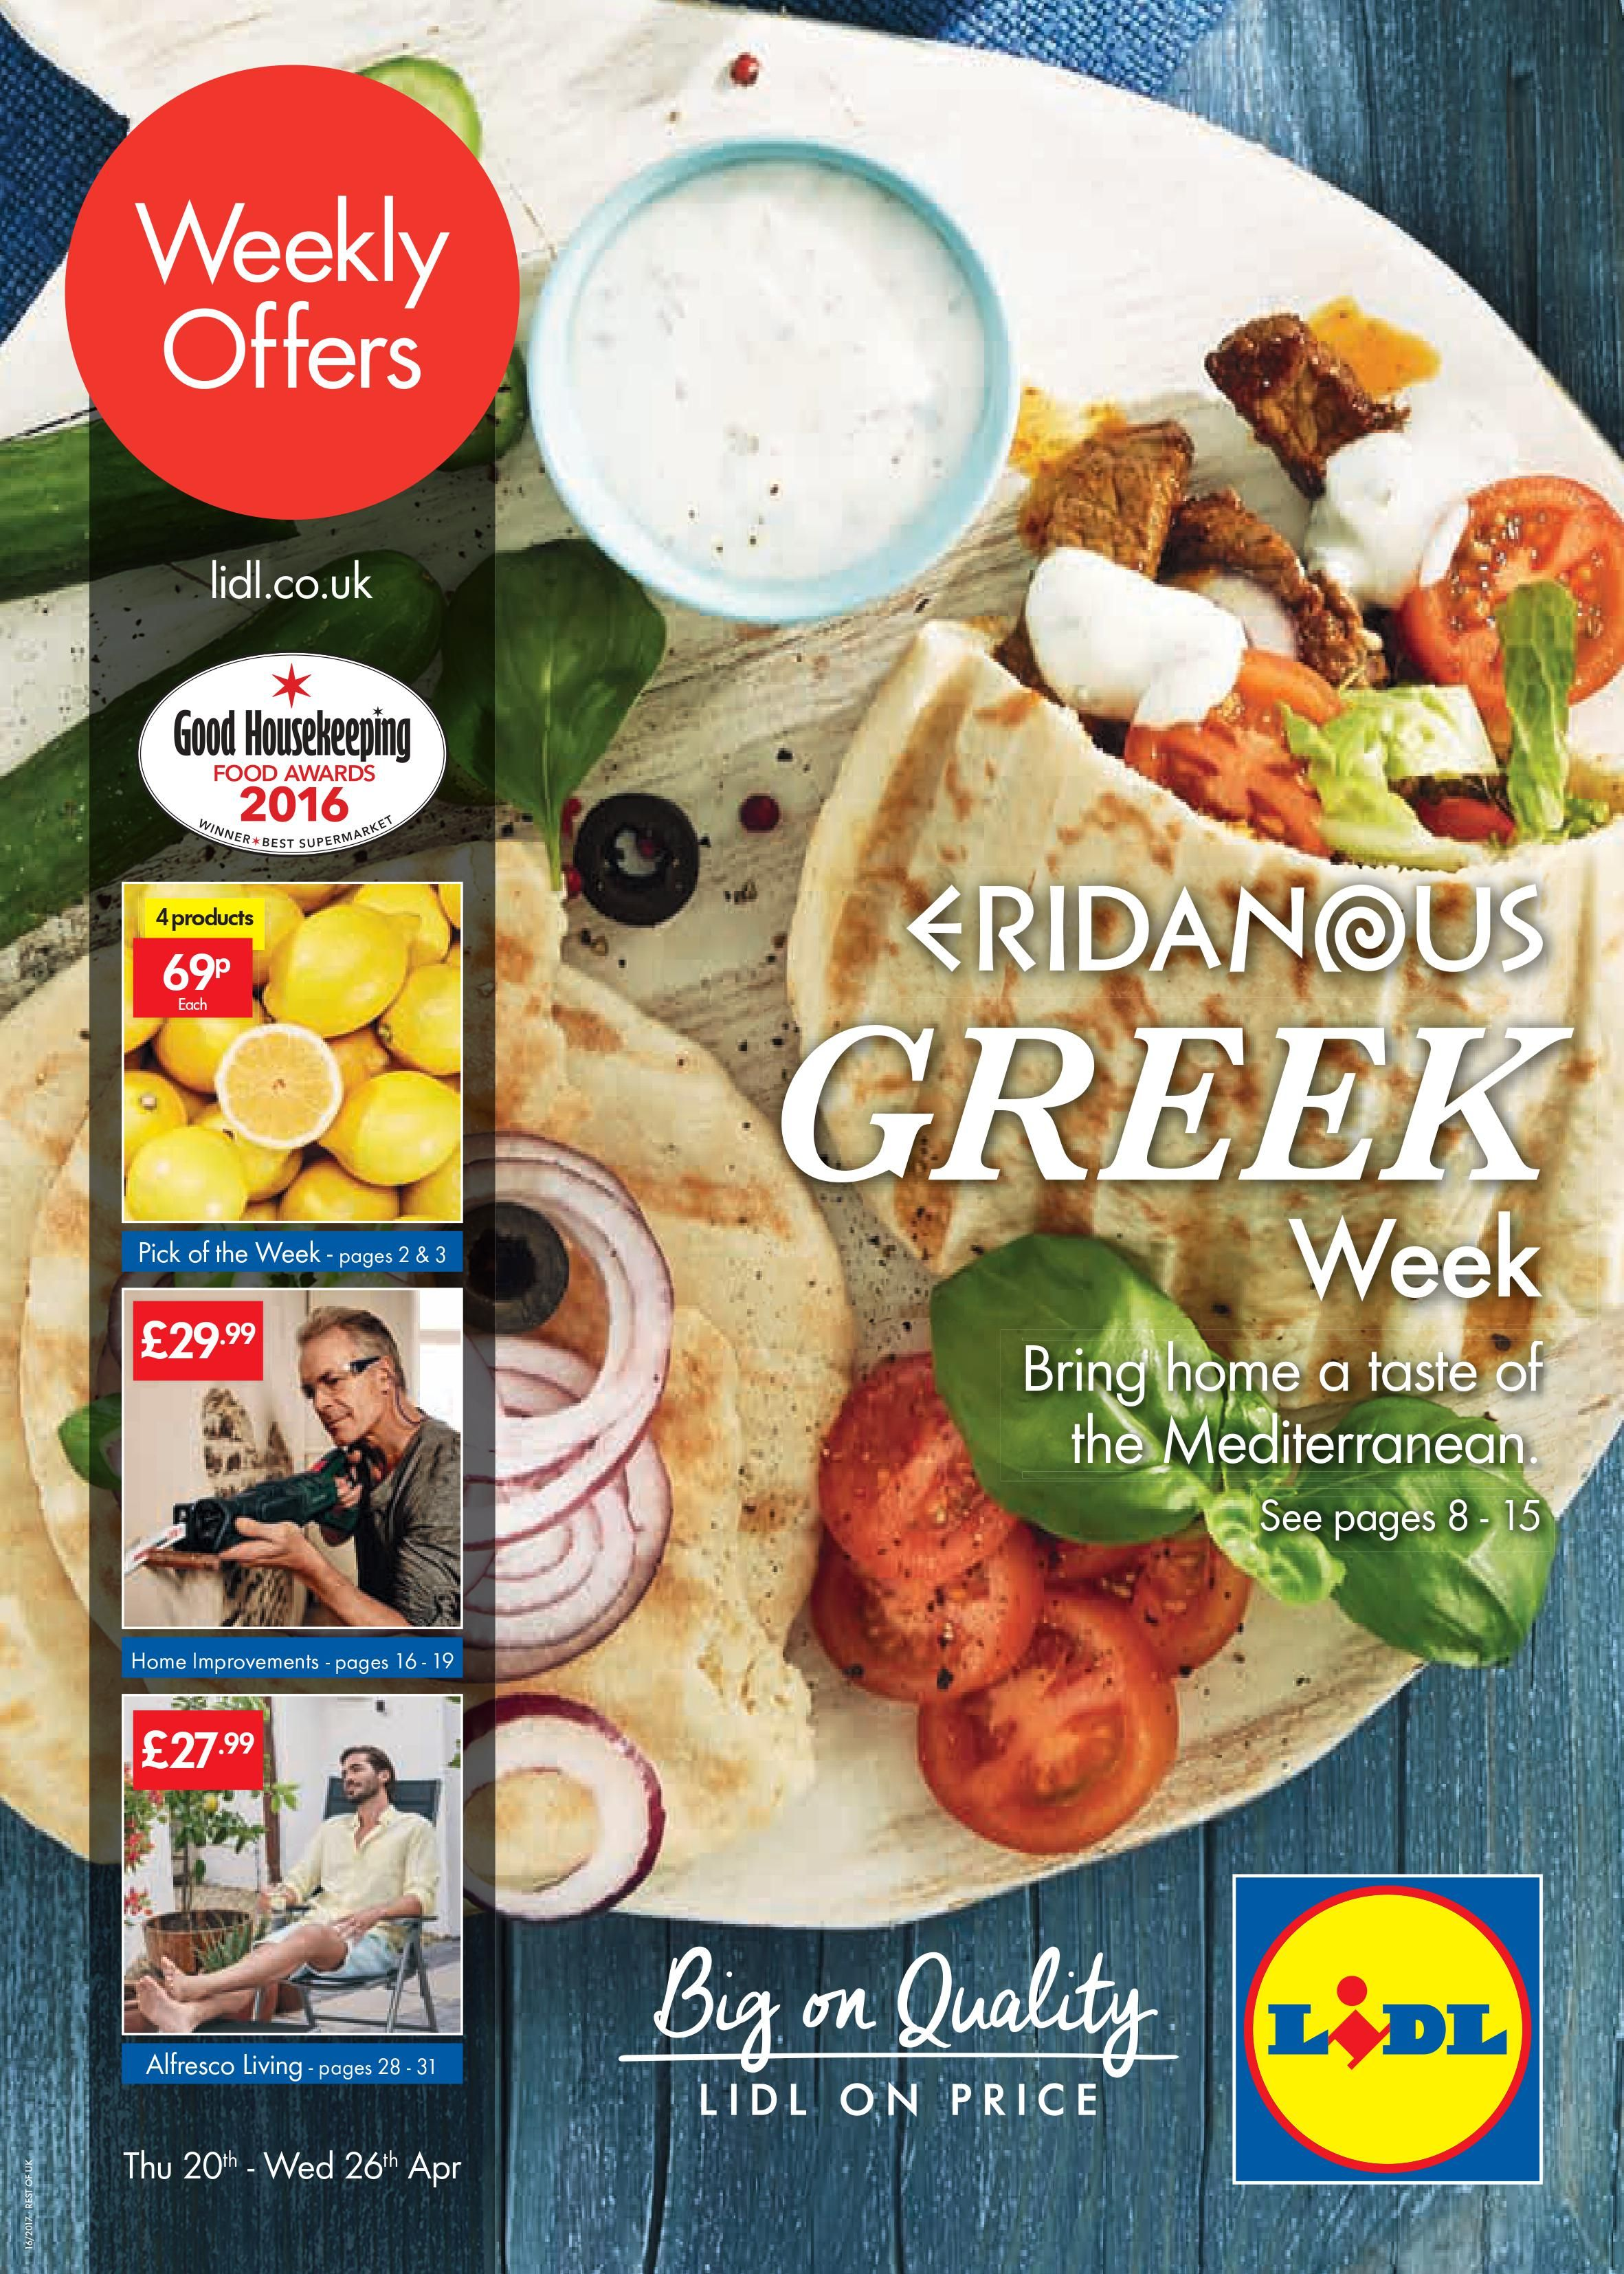 02985f9bb Lidl Offers Leaflet from 20th April-26th April 2017: Greek Week, Home  Improvements